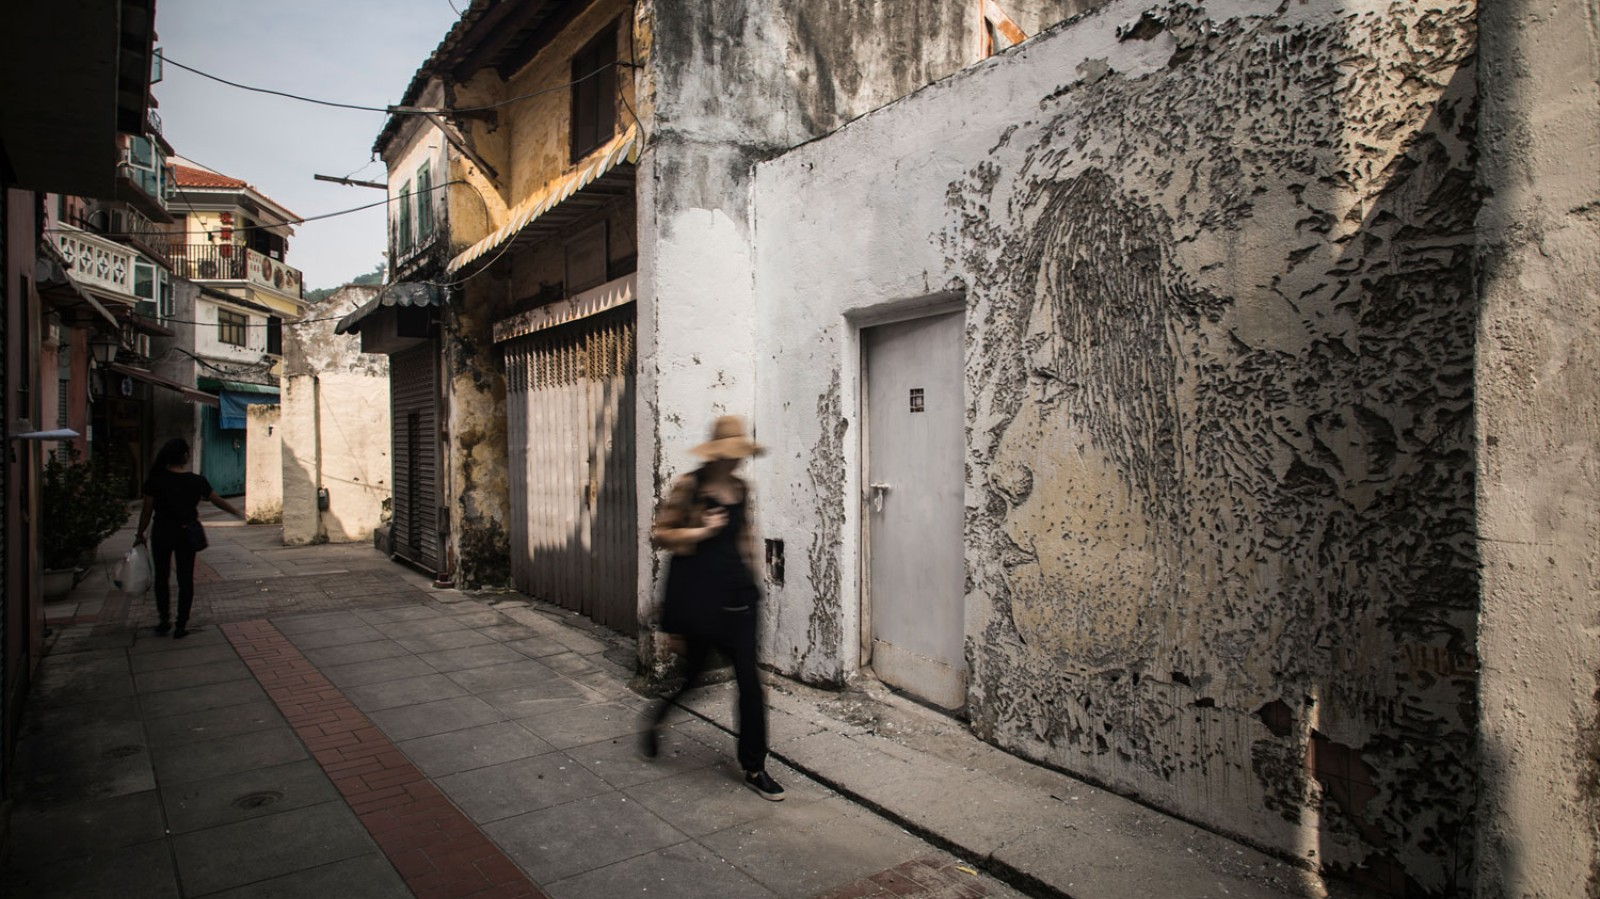 A Fearless Street Artist Carves on Walls with Explosives, Drills, and Acid